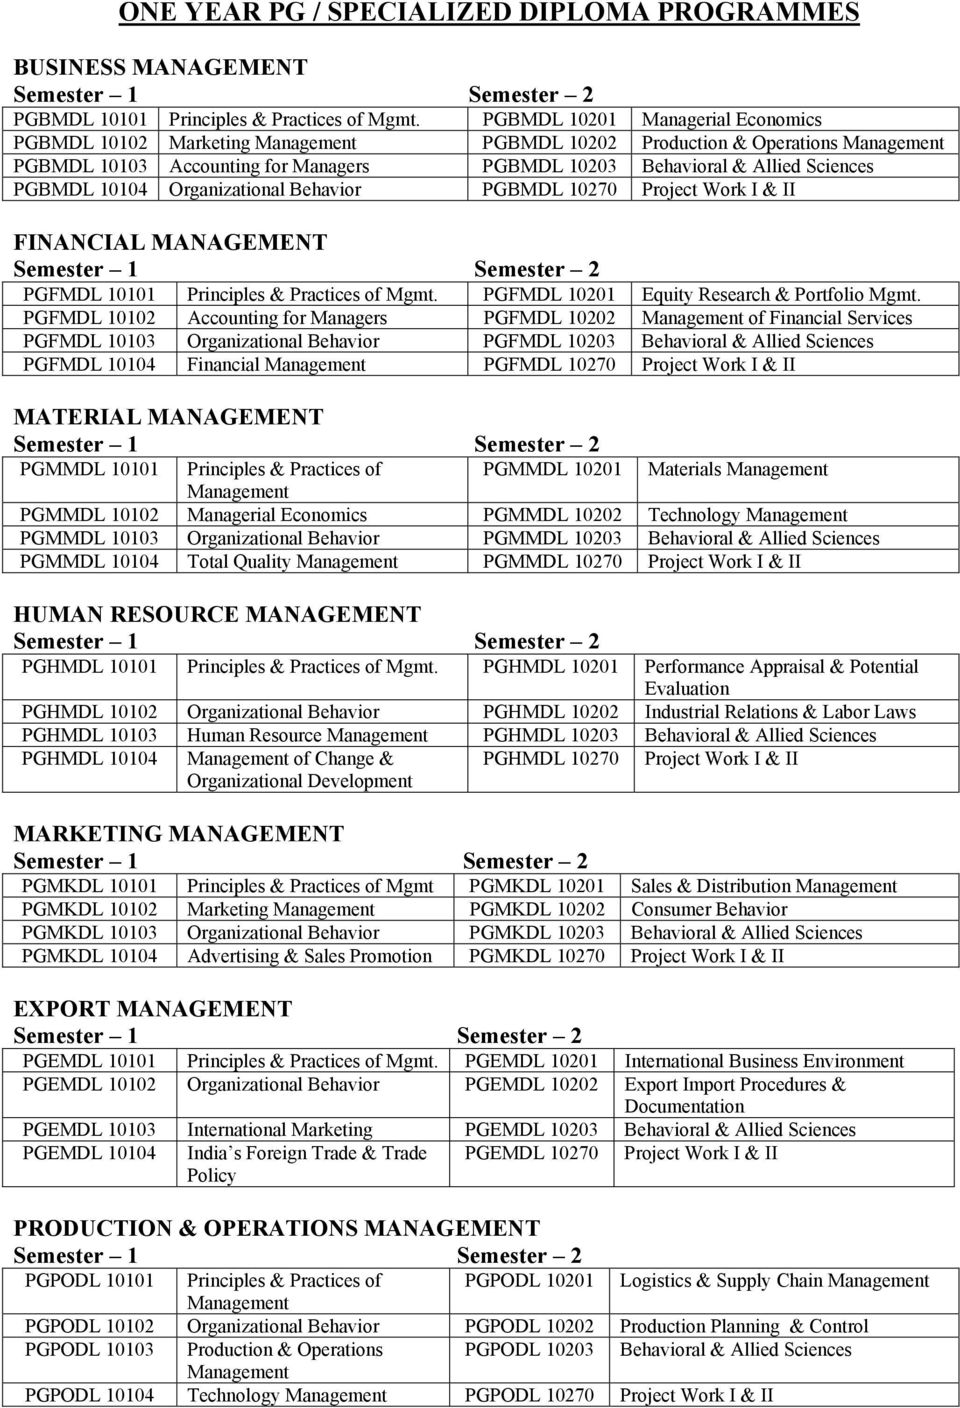 Organizational Behavior PGBMDL 10270 Project Work I & II FINANCIAL MANAGEMENT PGFMDL 10101 Principles & Practices of Mgmt. PGFMDL 10201 Equity Research & Portfolio Mgmt.